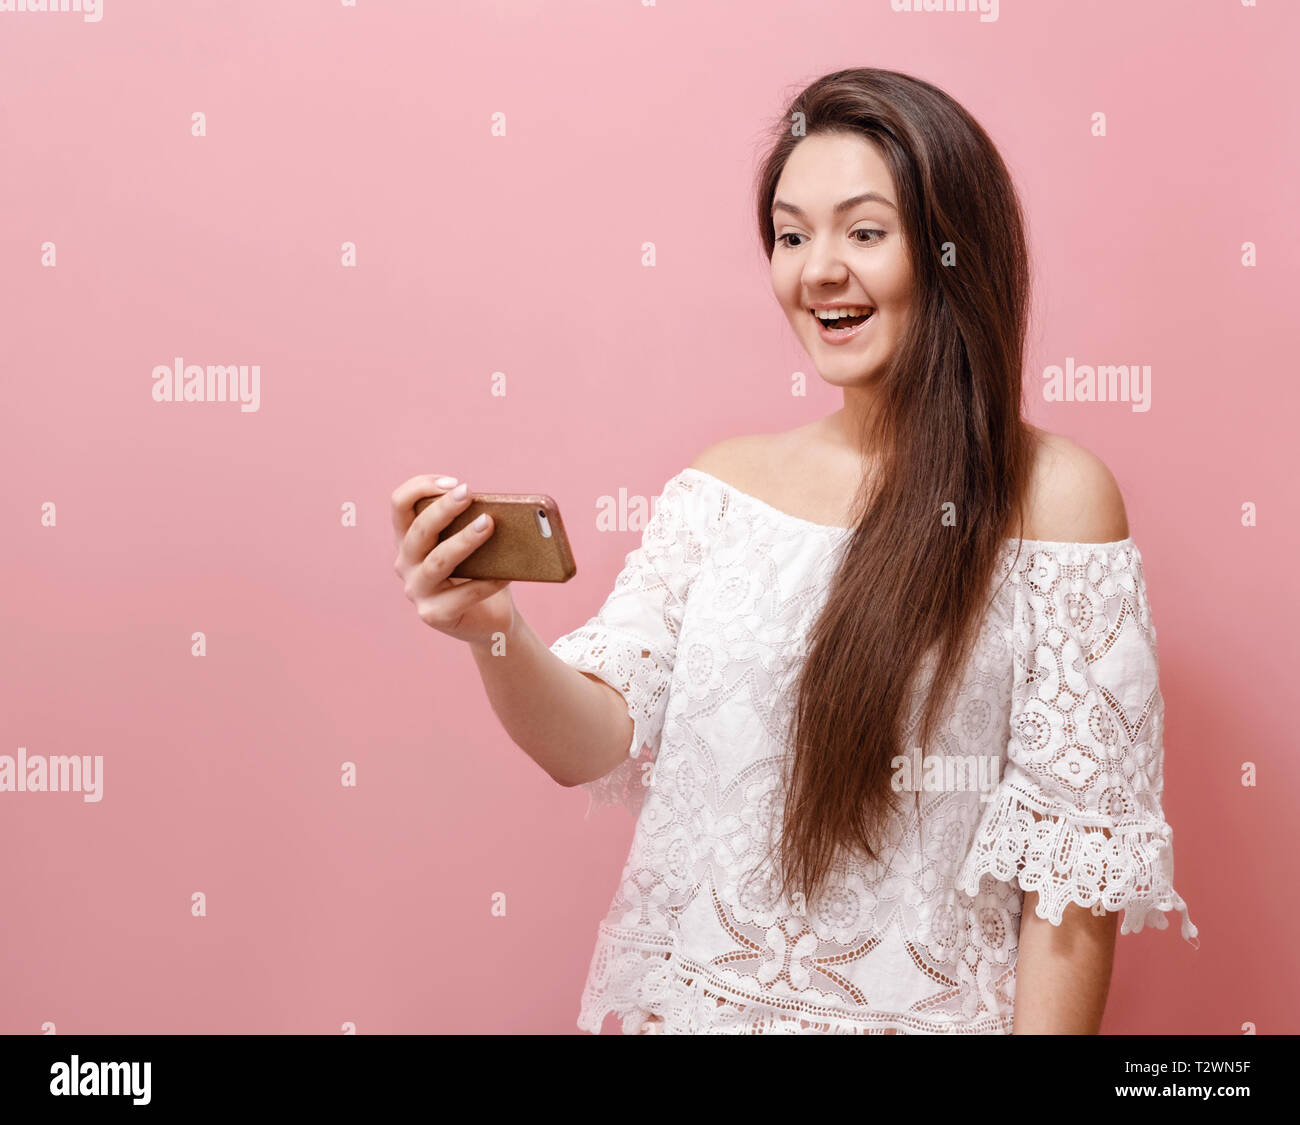 young woman happily looks into smartphone on pink background - Stock Image